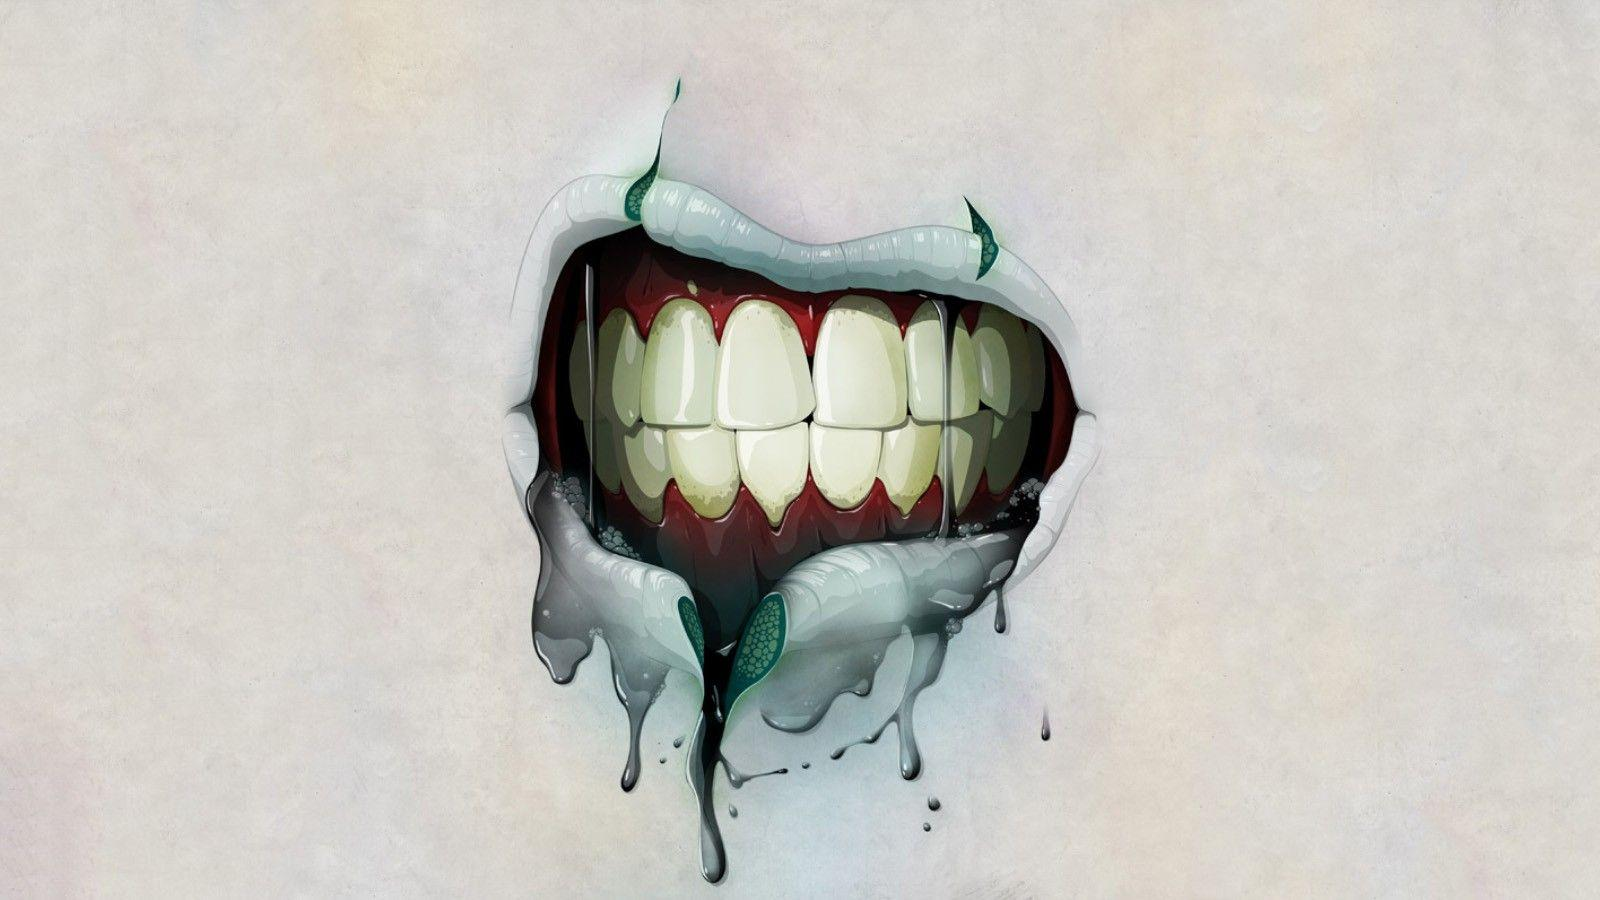 Teeth Wallpapers - Wallpaper Cave